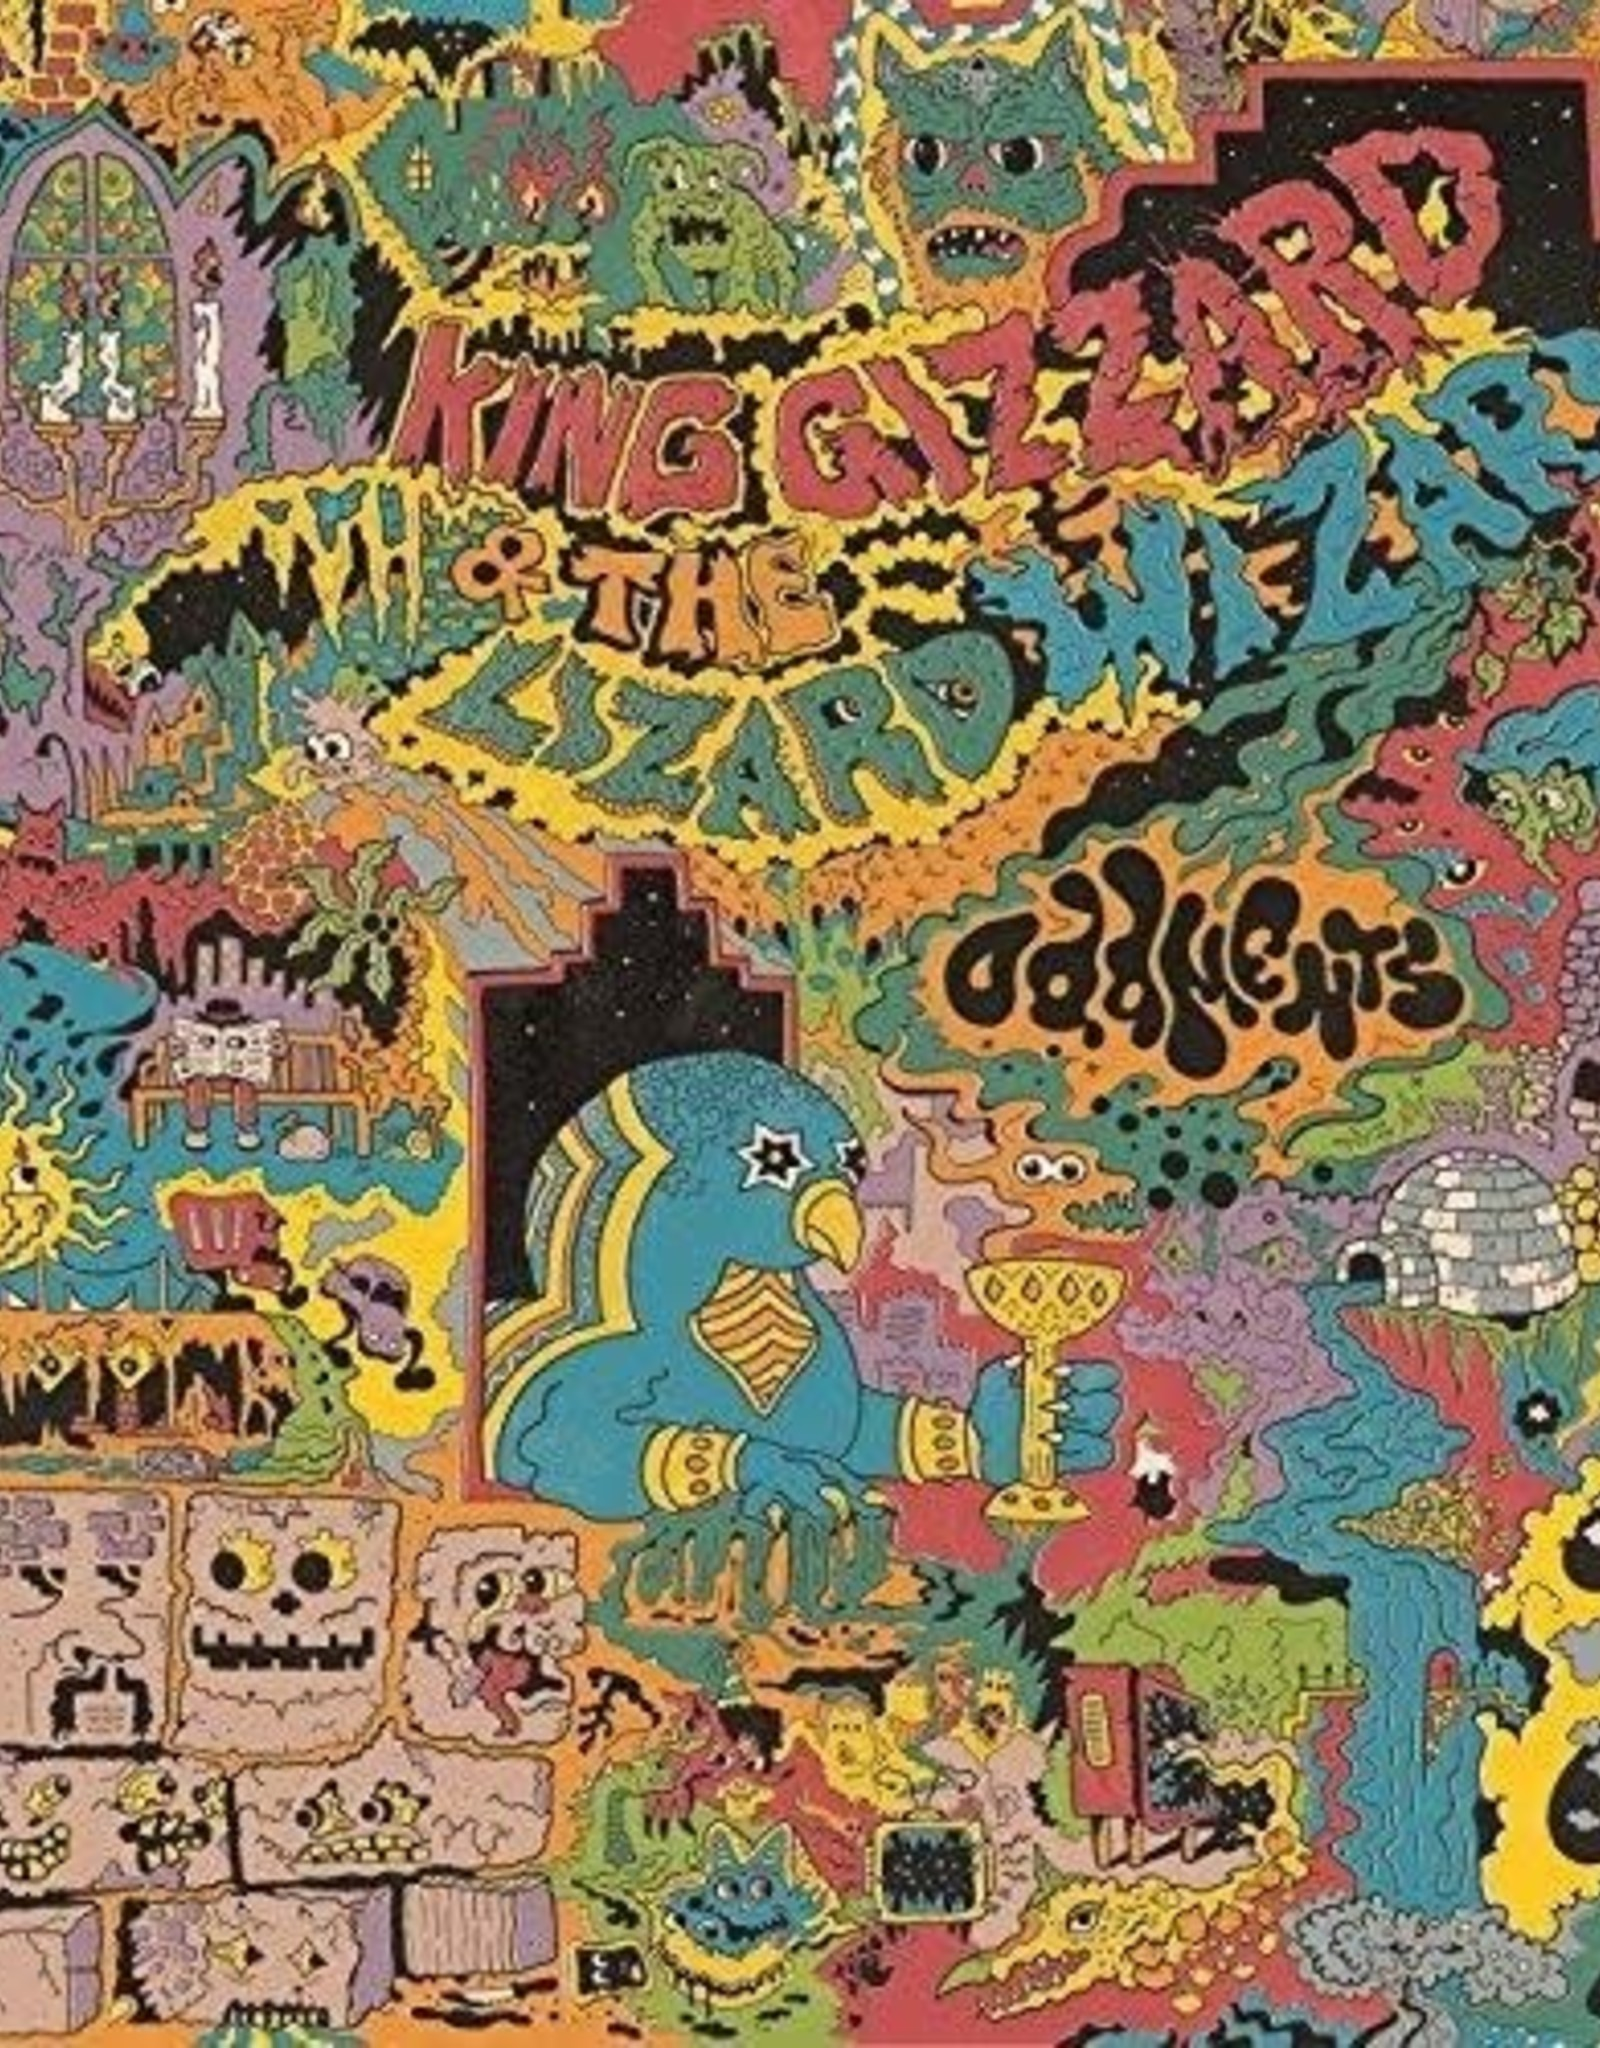 King Gizzard and the Lizard Wizard - Oddments